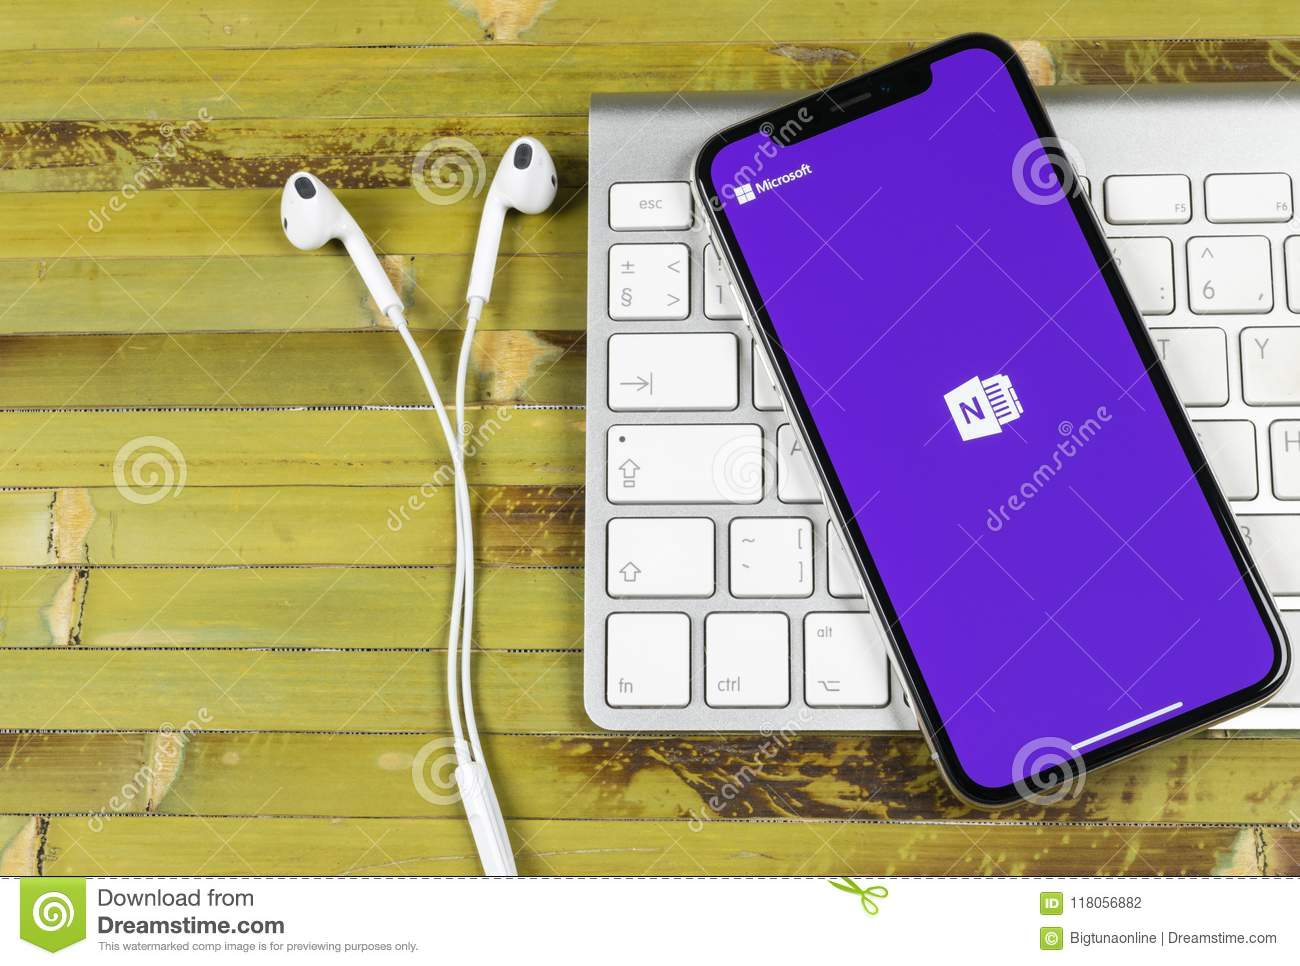 Microsoft OneNote Office Application Icon On Apple IPhone X